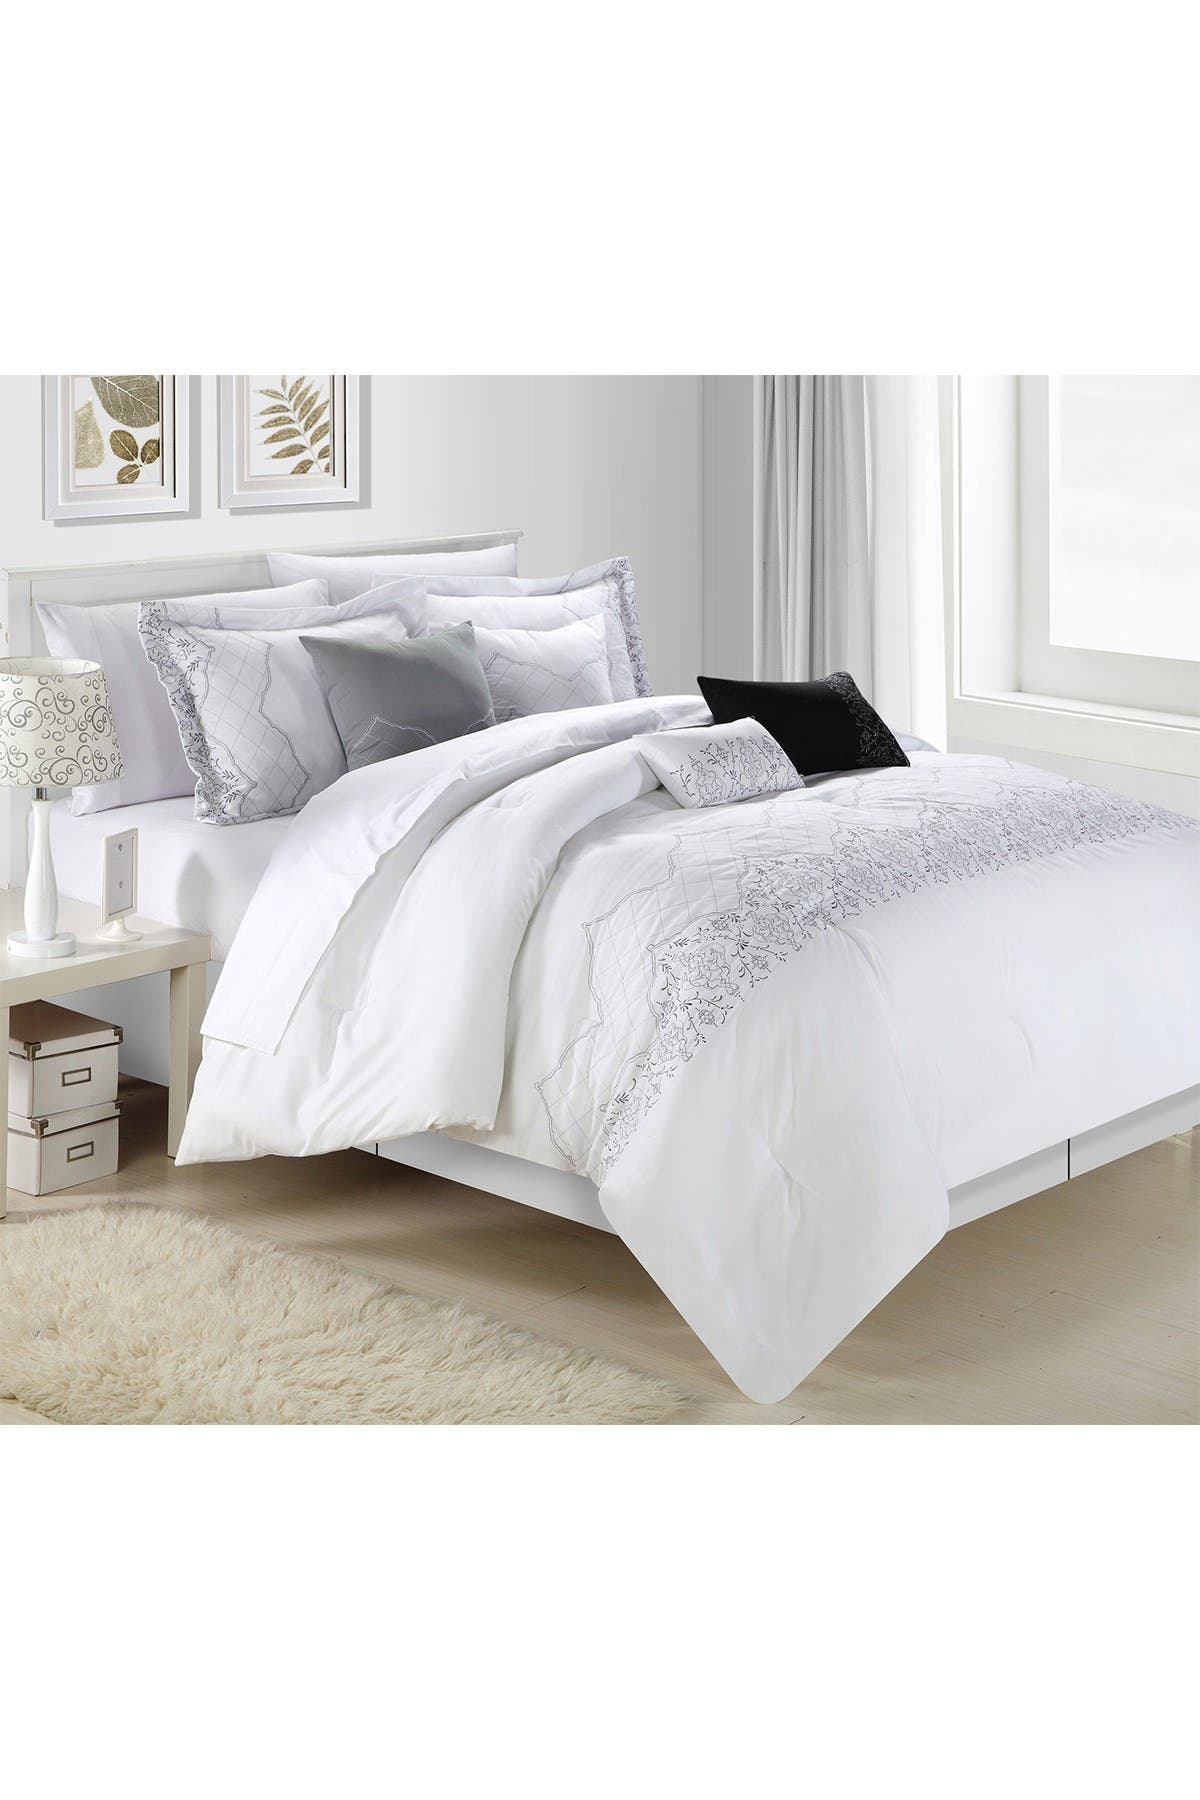 Image of Chic Home Bedding Queen Gracia Embroidered Bridal Collection Comforter 8-Piece Set - White